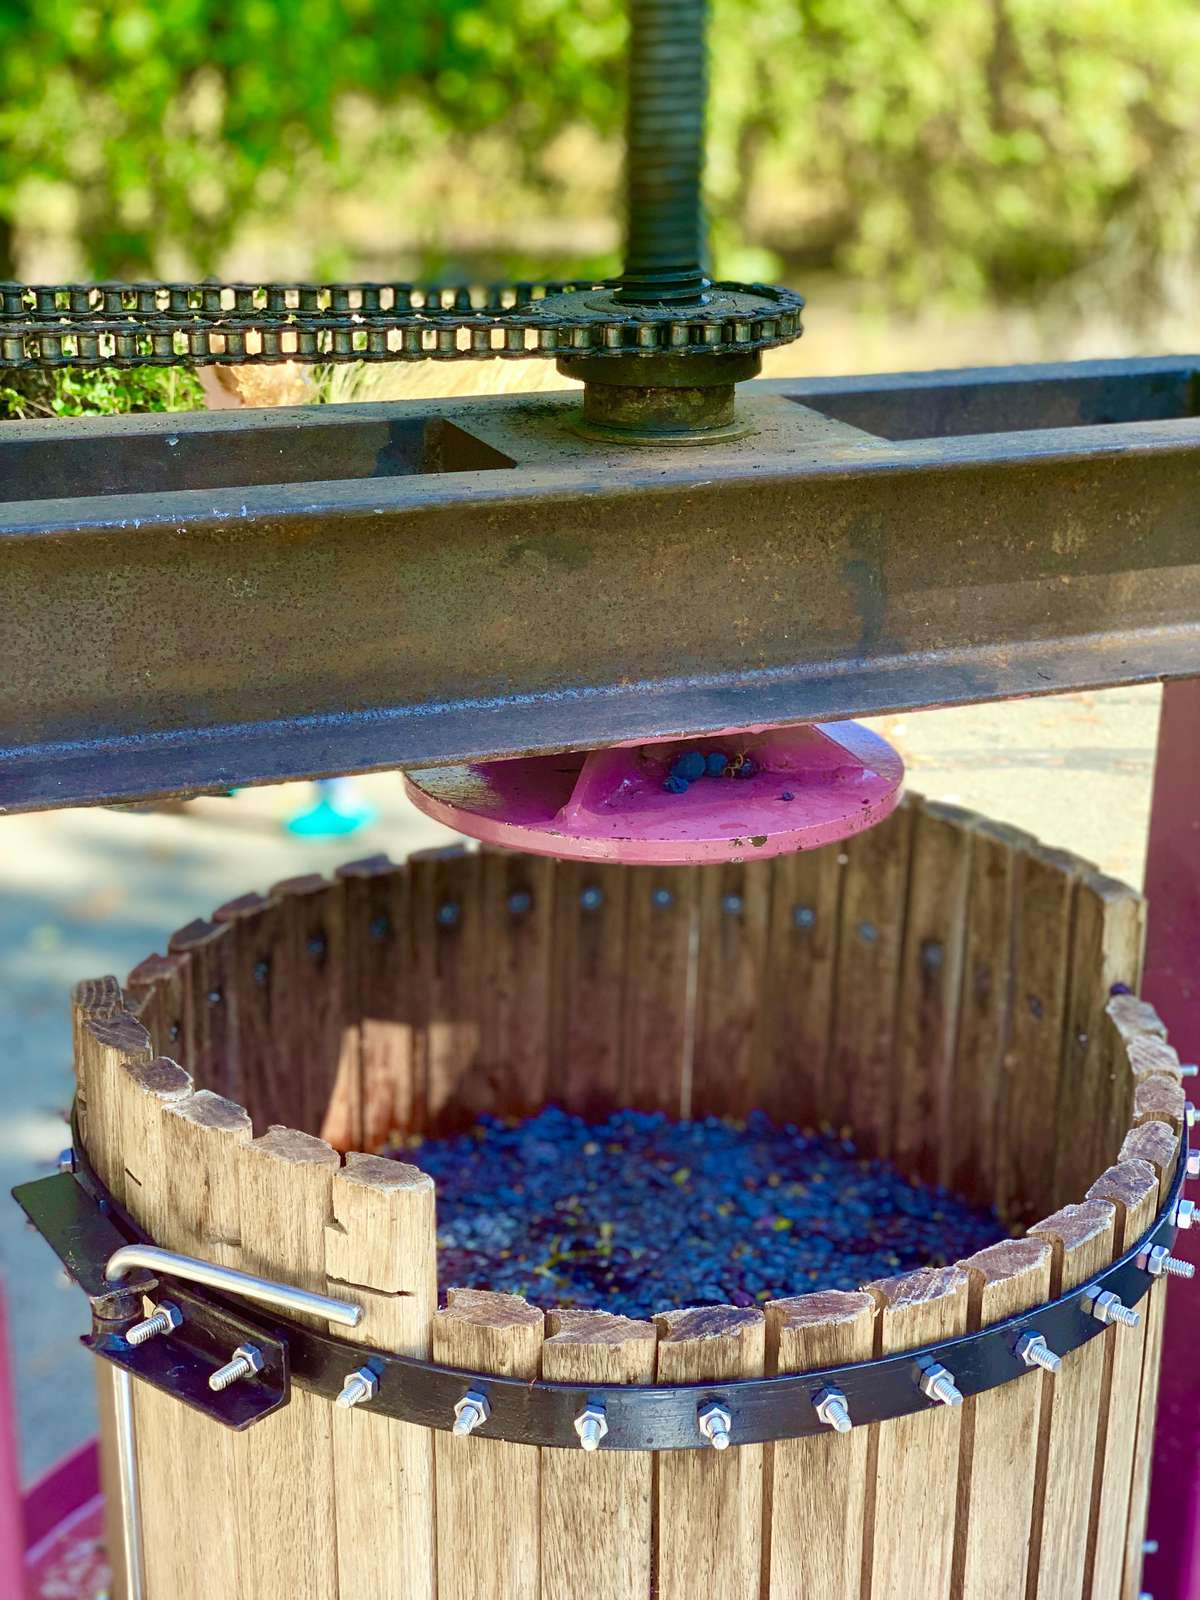 Ready to press the grapes!